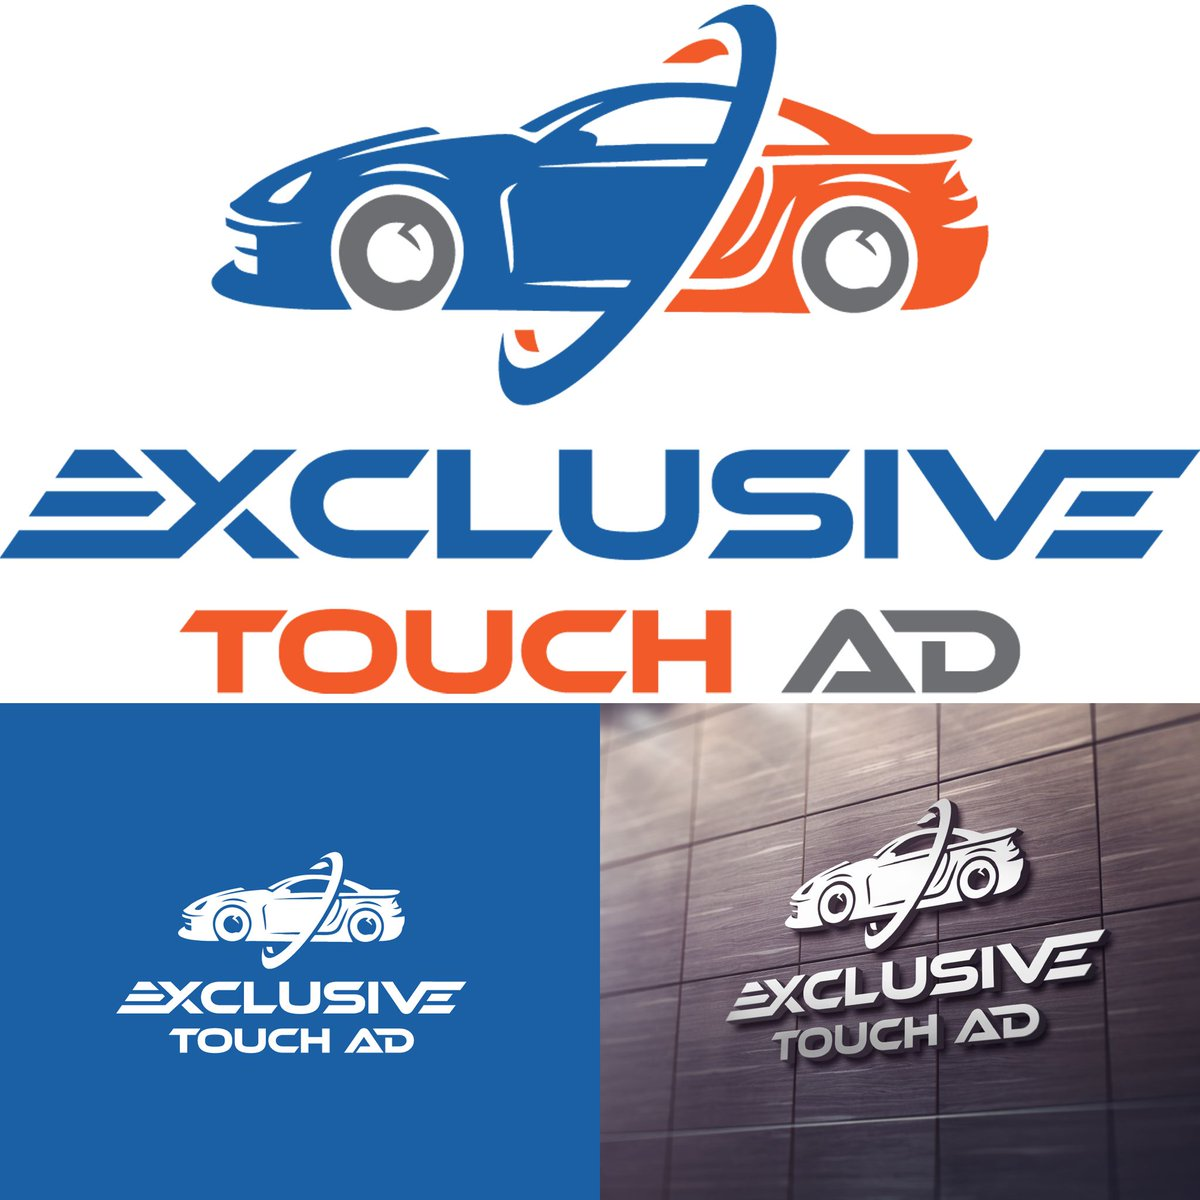 New Logo Design for Exclusive Touch AD #41Global #logodesigner #branding #logo #logos #design #designs #logodesigns #logotype #graphic #graphicdesigns #brand #brandidentity #illustration #flatdesign #vector #inspiration #adobe #illustrator #marketing #photoshop #auto https://t.co/6fOOUYCm3Z